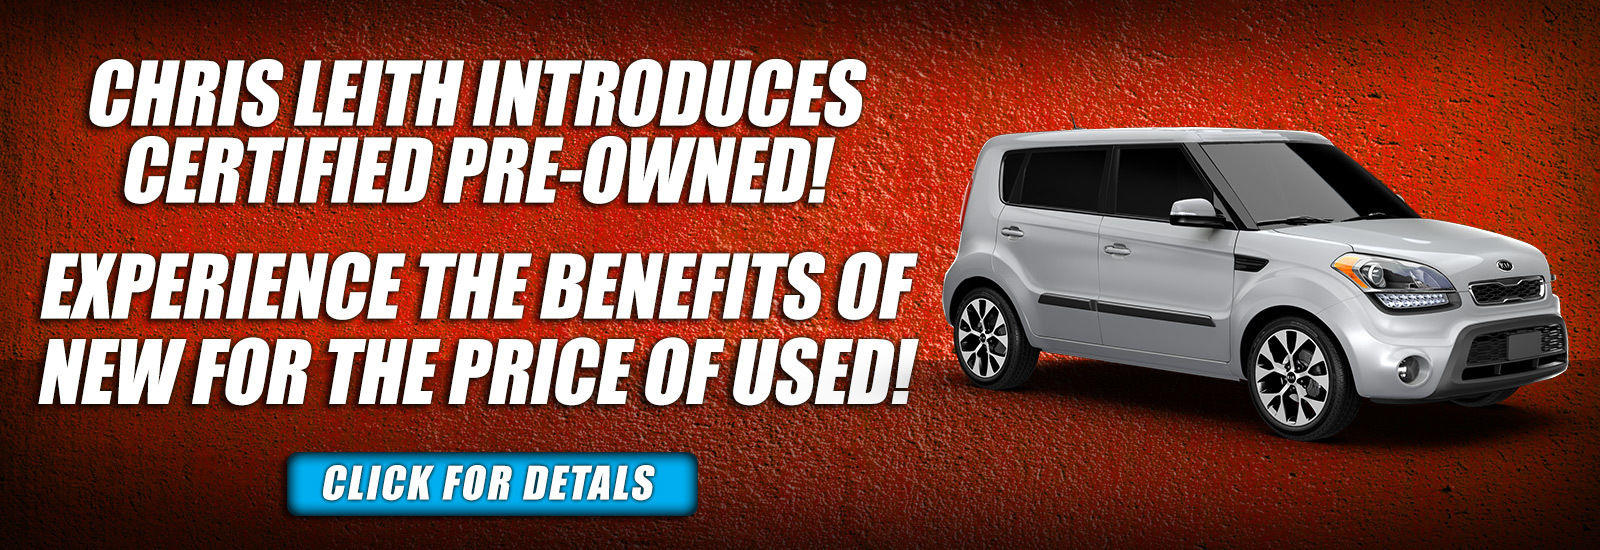 Capital Ford Raleigh Nc >> Chris Leith Pre-Owned Wake Forest - Raleigh NC Used Car ...